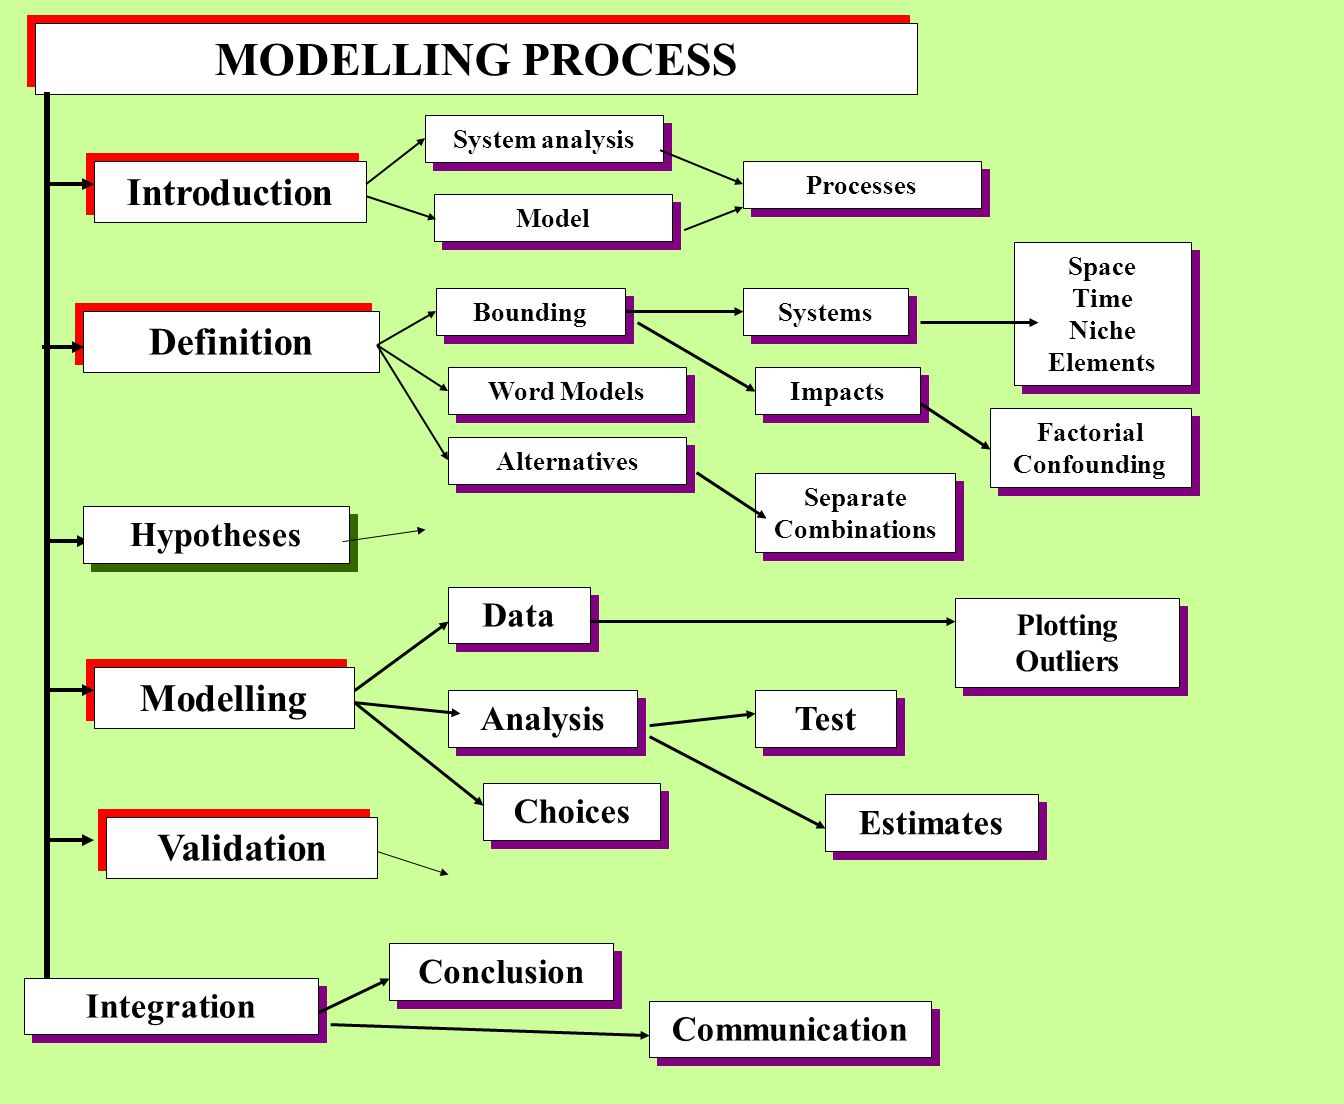 MODELLING PROCESS Introduction Definition Modelling Validation